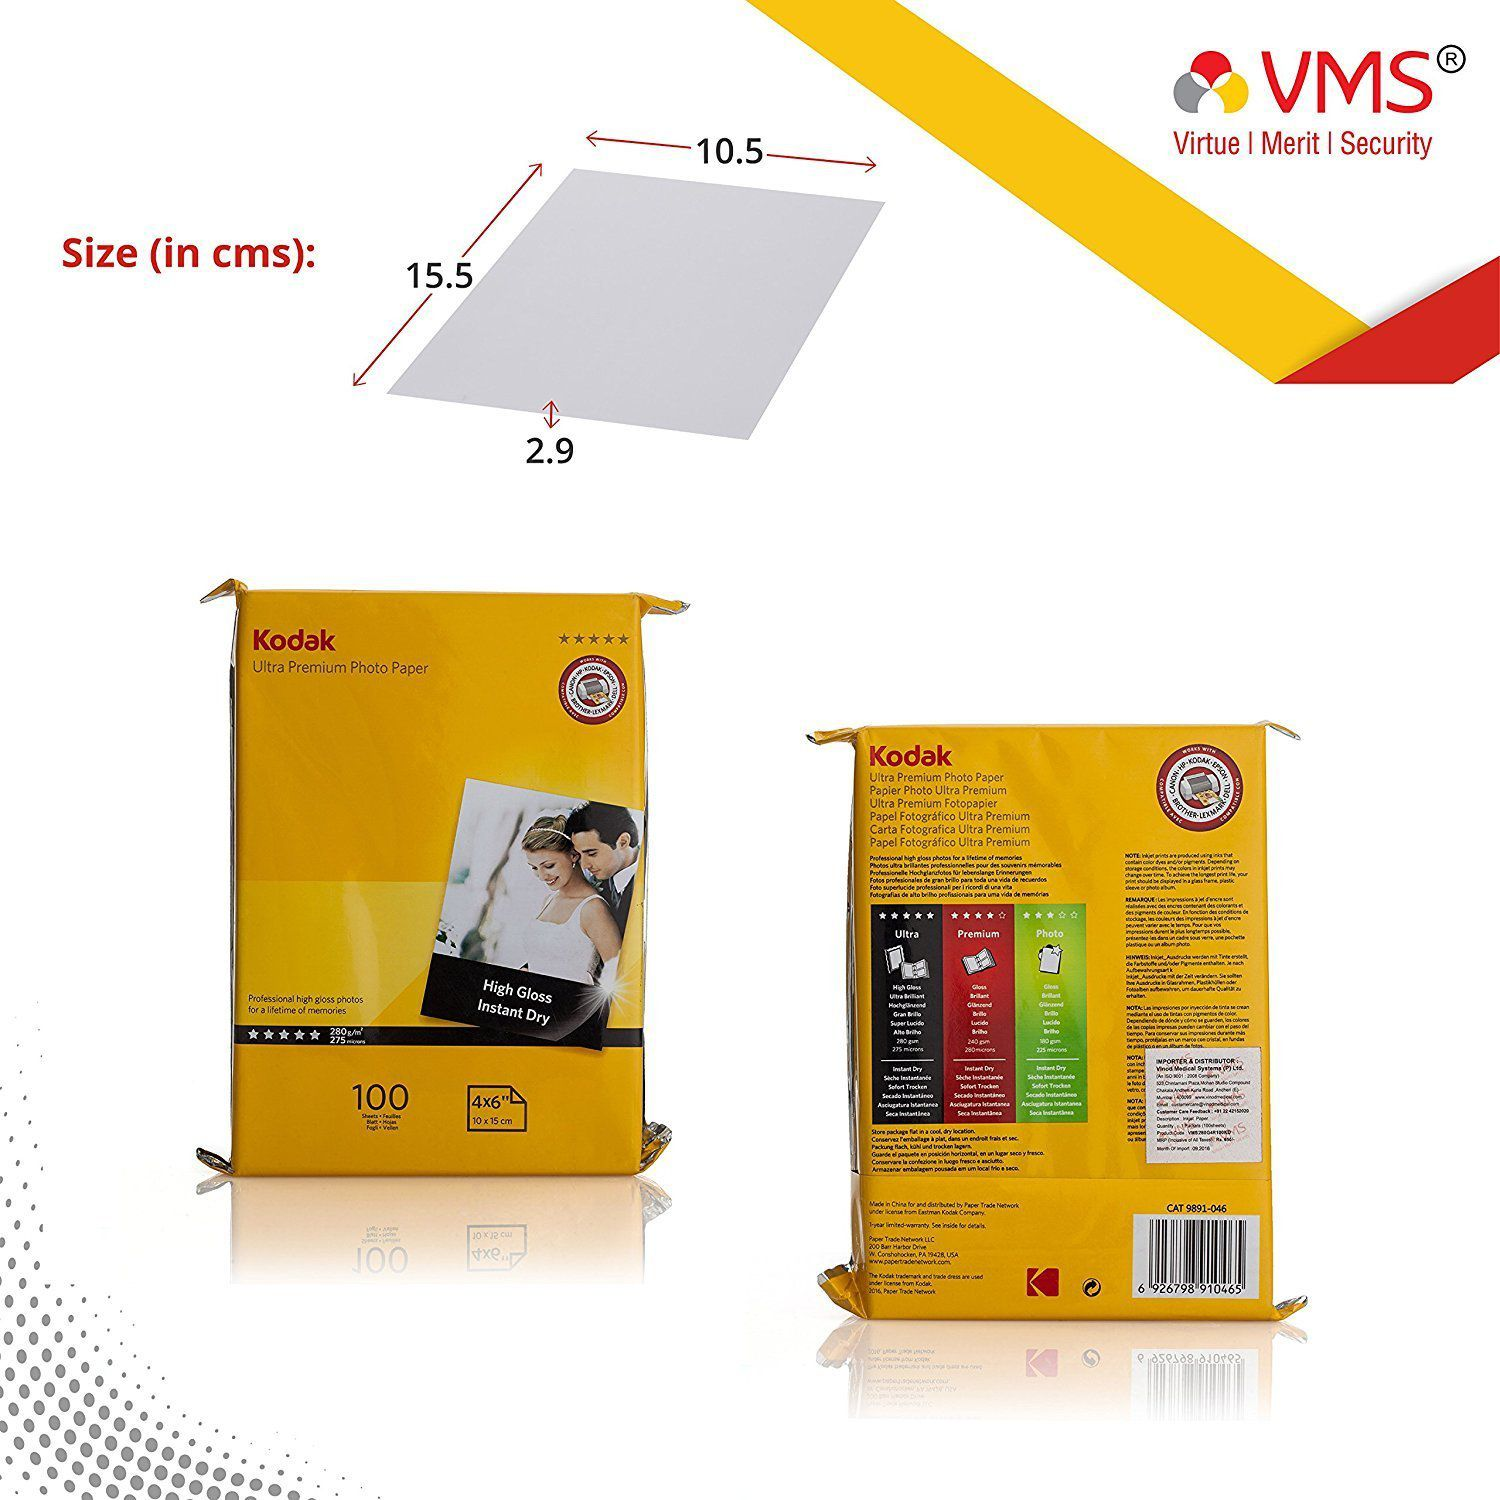 Kodak High Gloss Photo Paper Poly Pack 4X6 280 GSM [200Sheets] Unruled 4R  4x6  Inkjet Paper   Set of 2, White